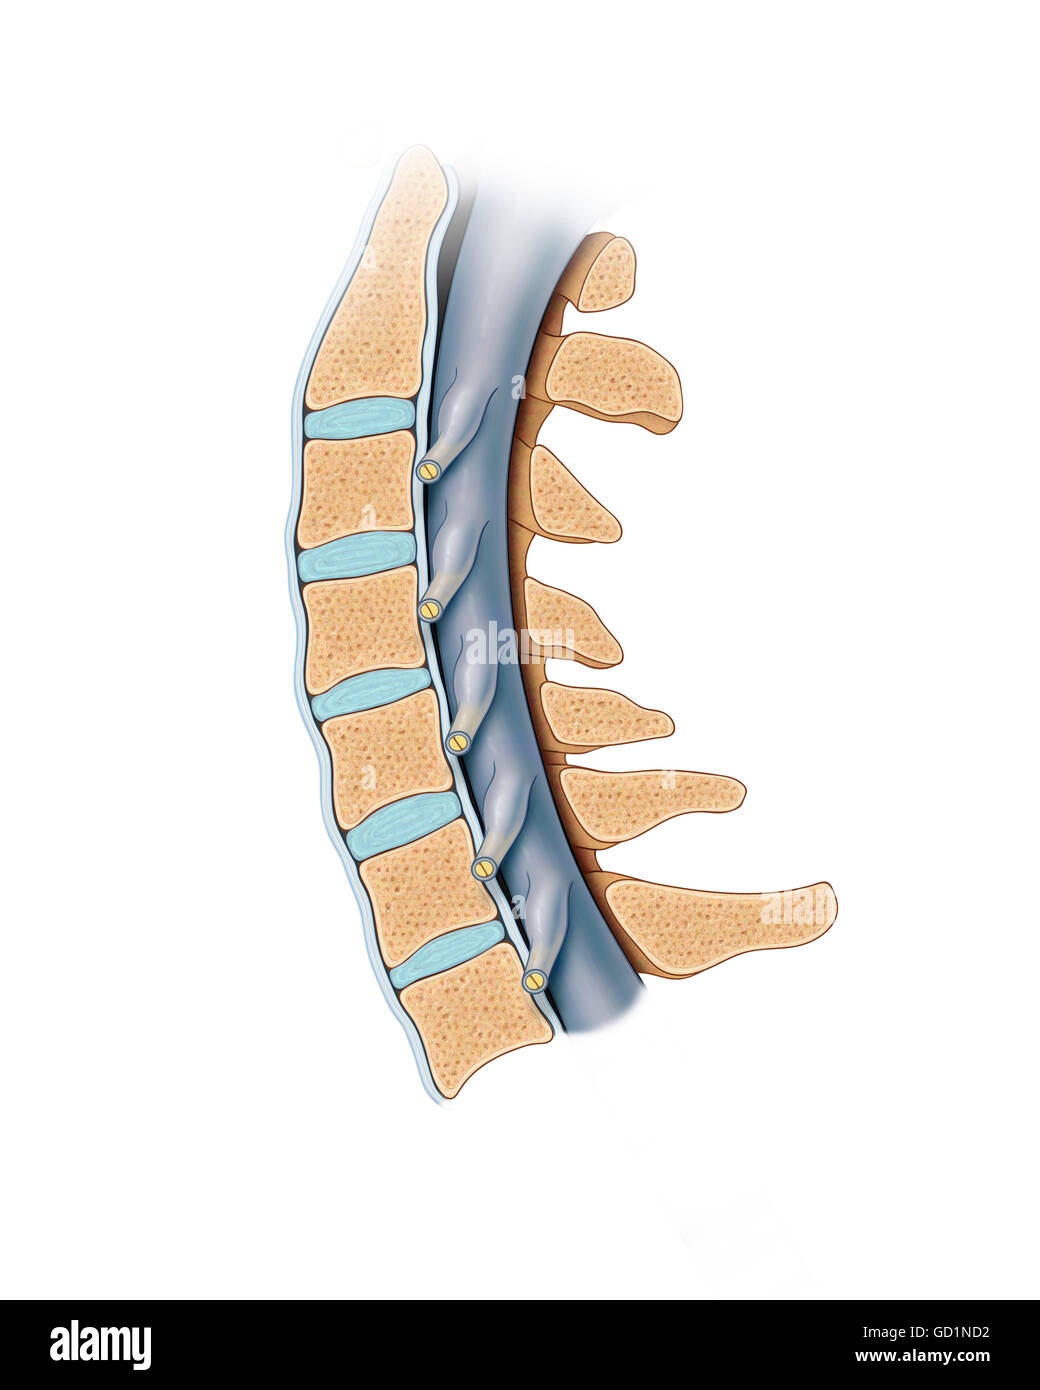 Normal Cervical Spinal Vertebrae And Cord In Cross Section